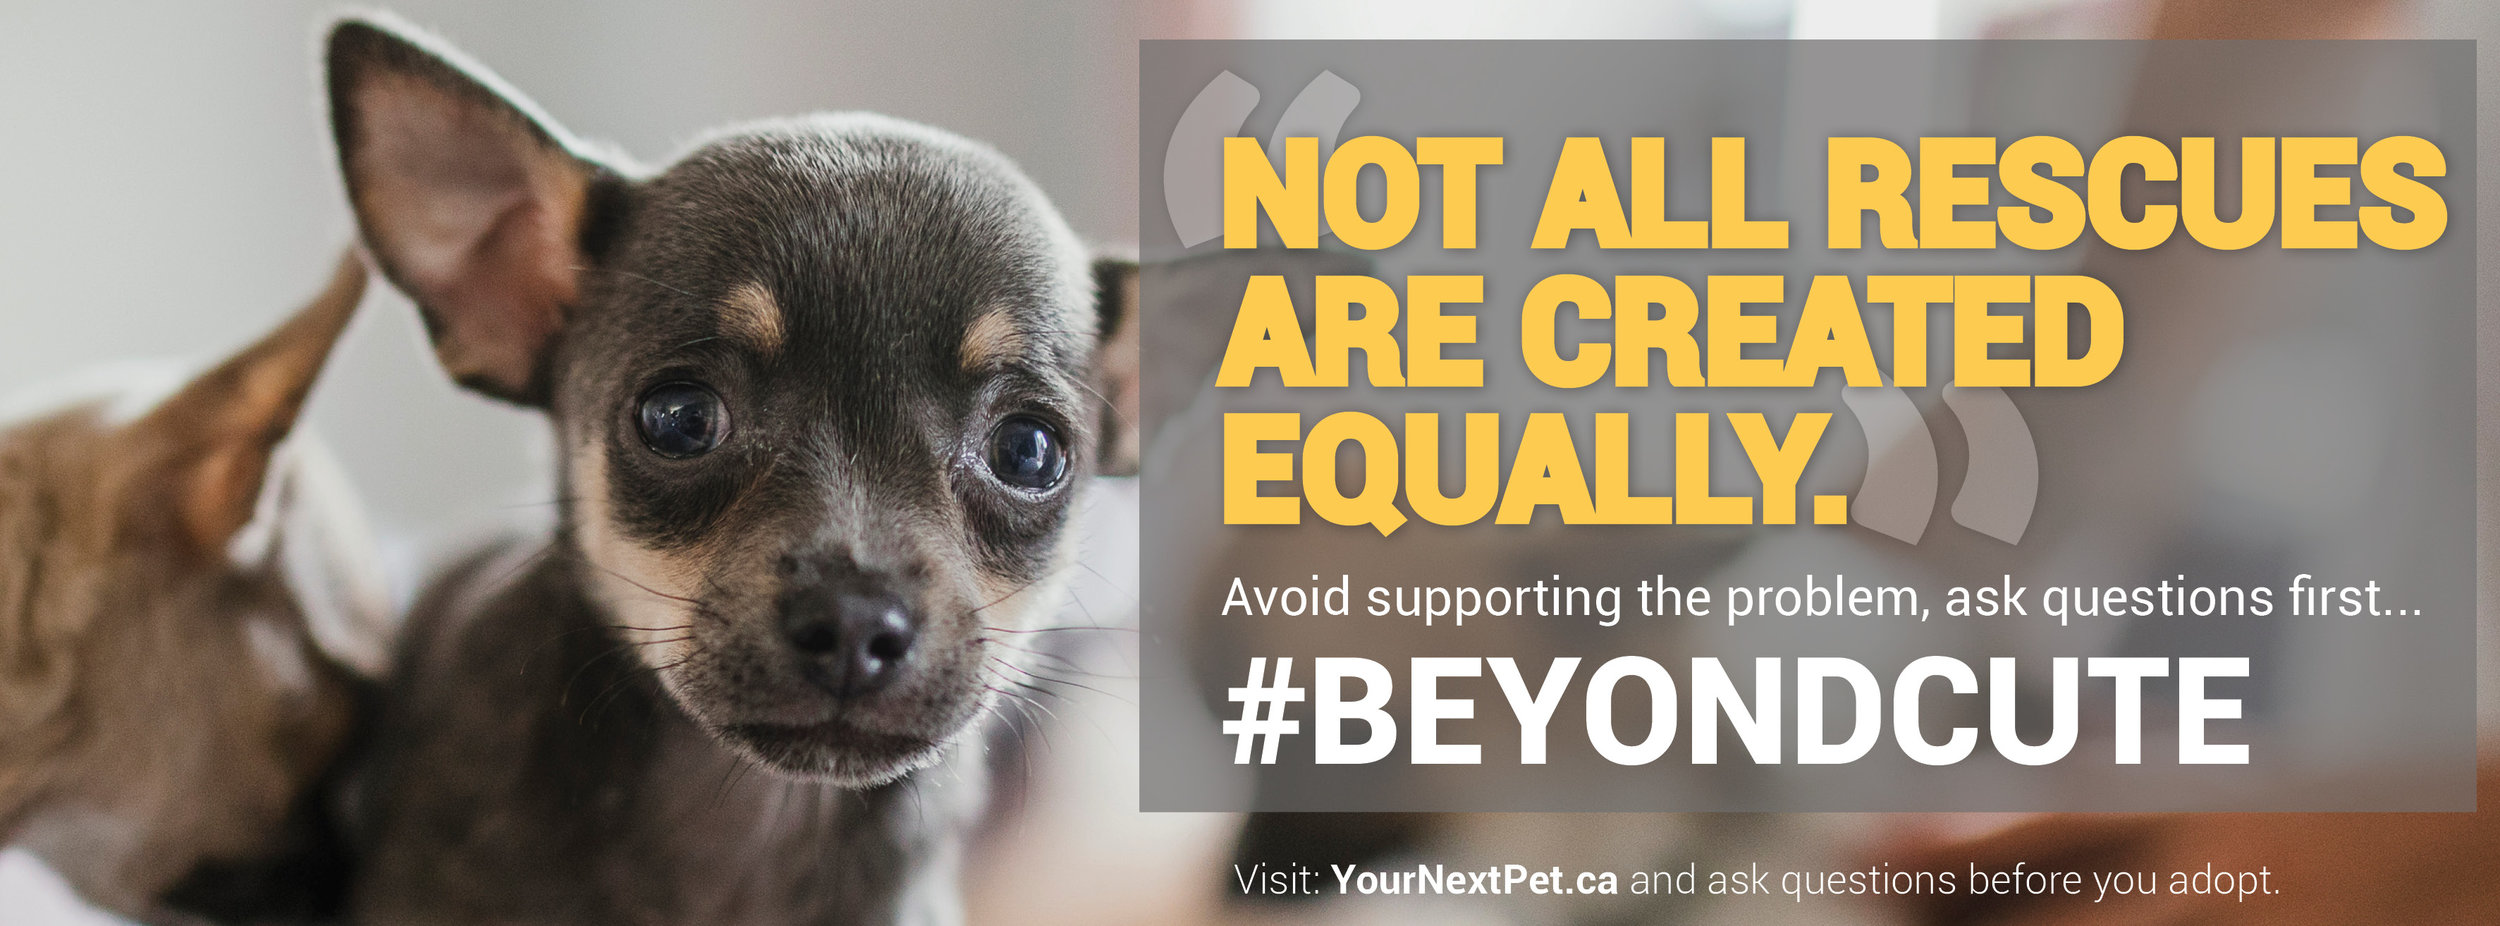 #BeyondCute - Facebook Banner - Not all rescues are created equally - BLOCKING FINAL DOG CHOICE 2019.jpg